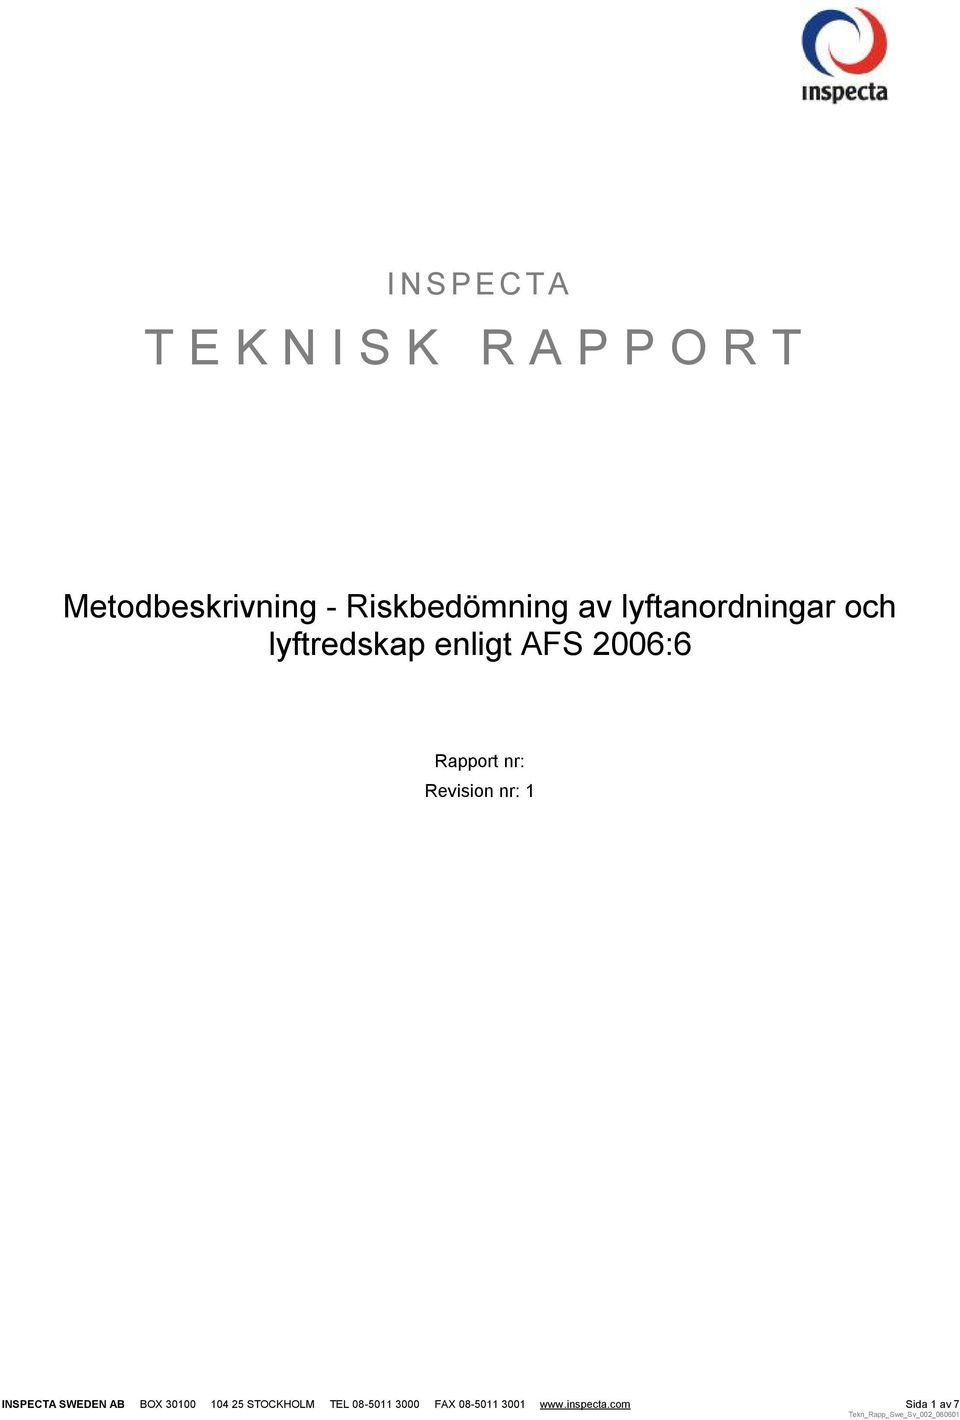 Revision nr: 1 INSPECTA SWEDEN AB BOX 30100 104 25 STOCKHOLM TEL